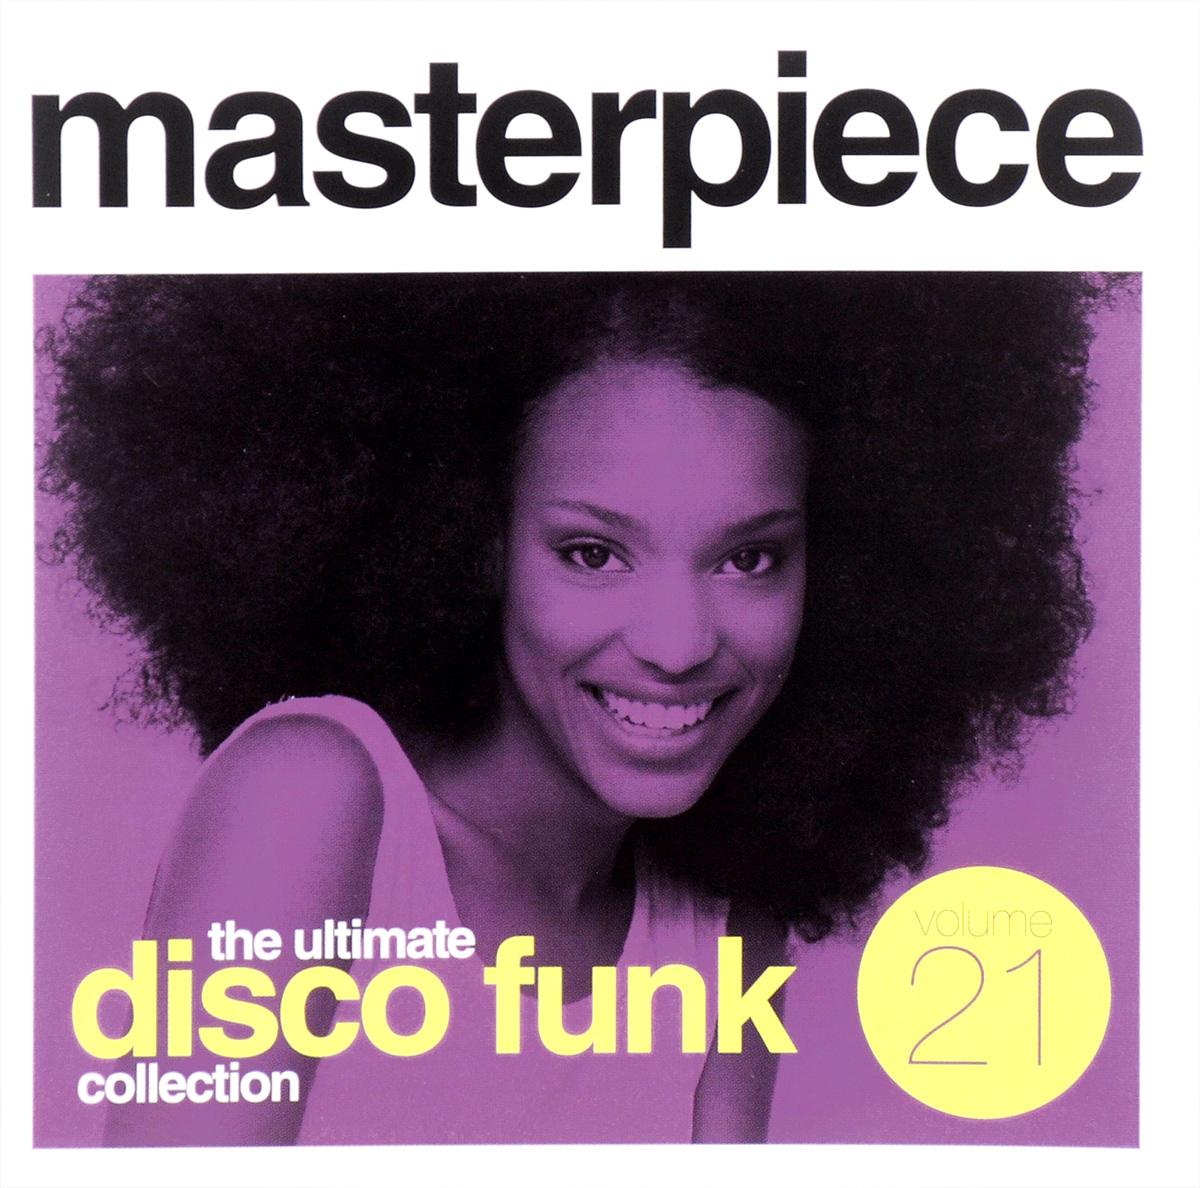 Masterpiece. The Ultimate Disco Funk Collection. Volume 21